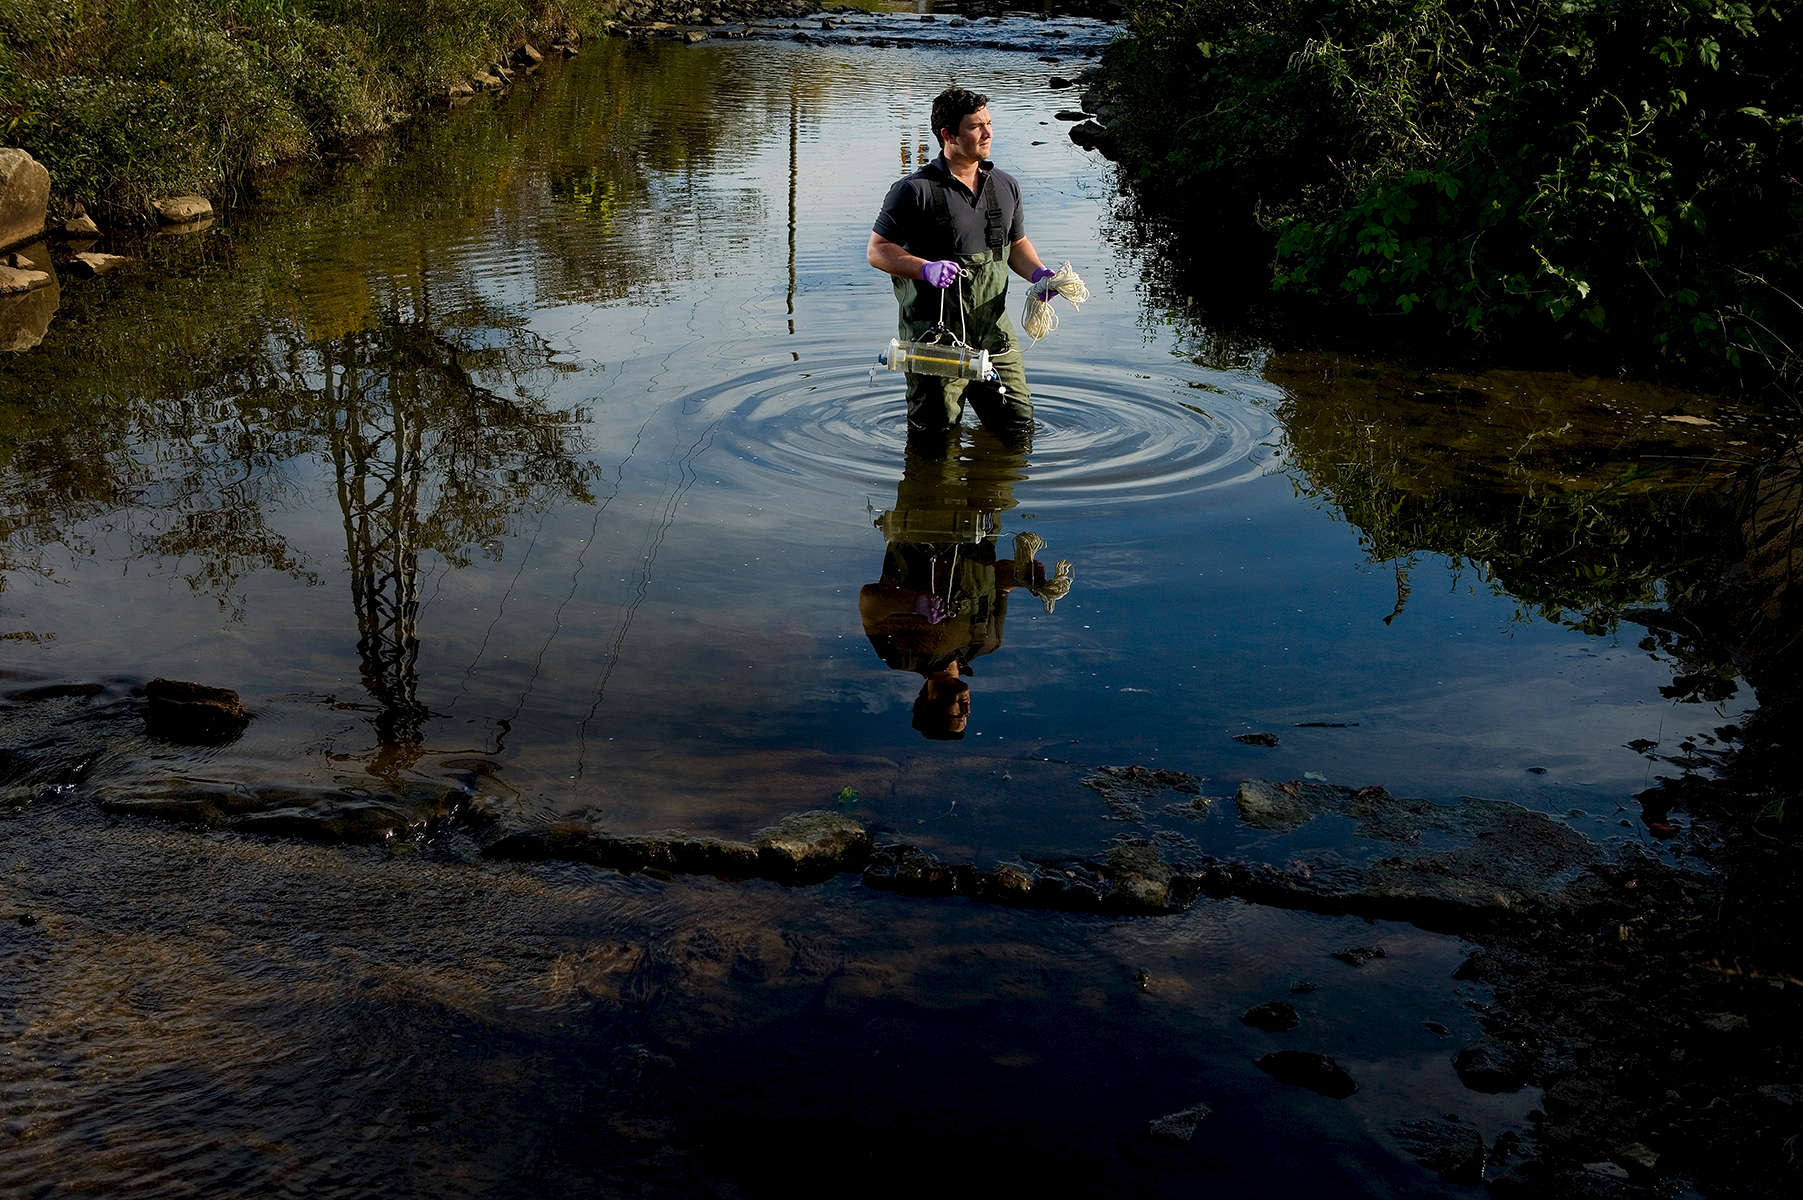 Catawba Riverkeeper Sam Perkins at work testing the waters in the Charlotte, North Carolina area.Charlotte Photographer - PatrickSchneiderPhoto.com